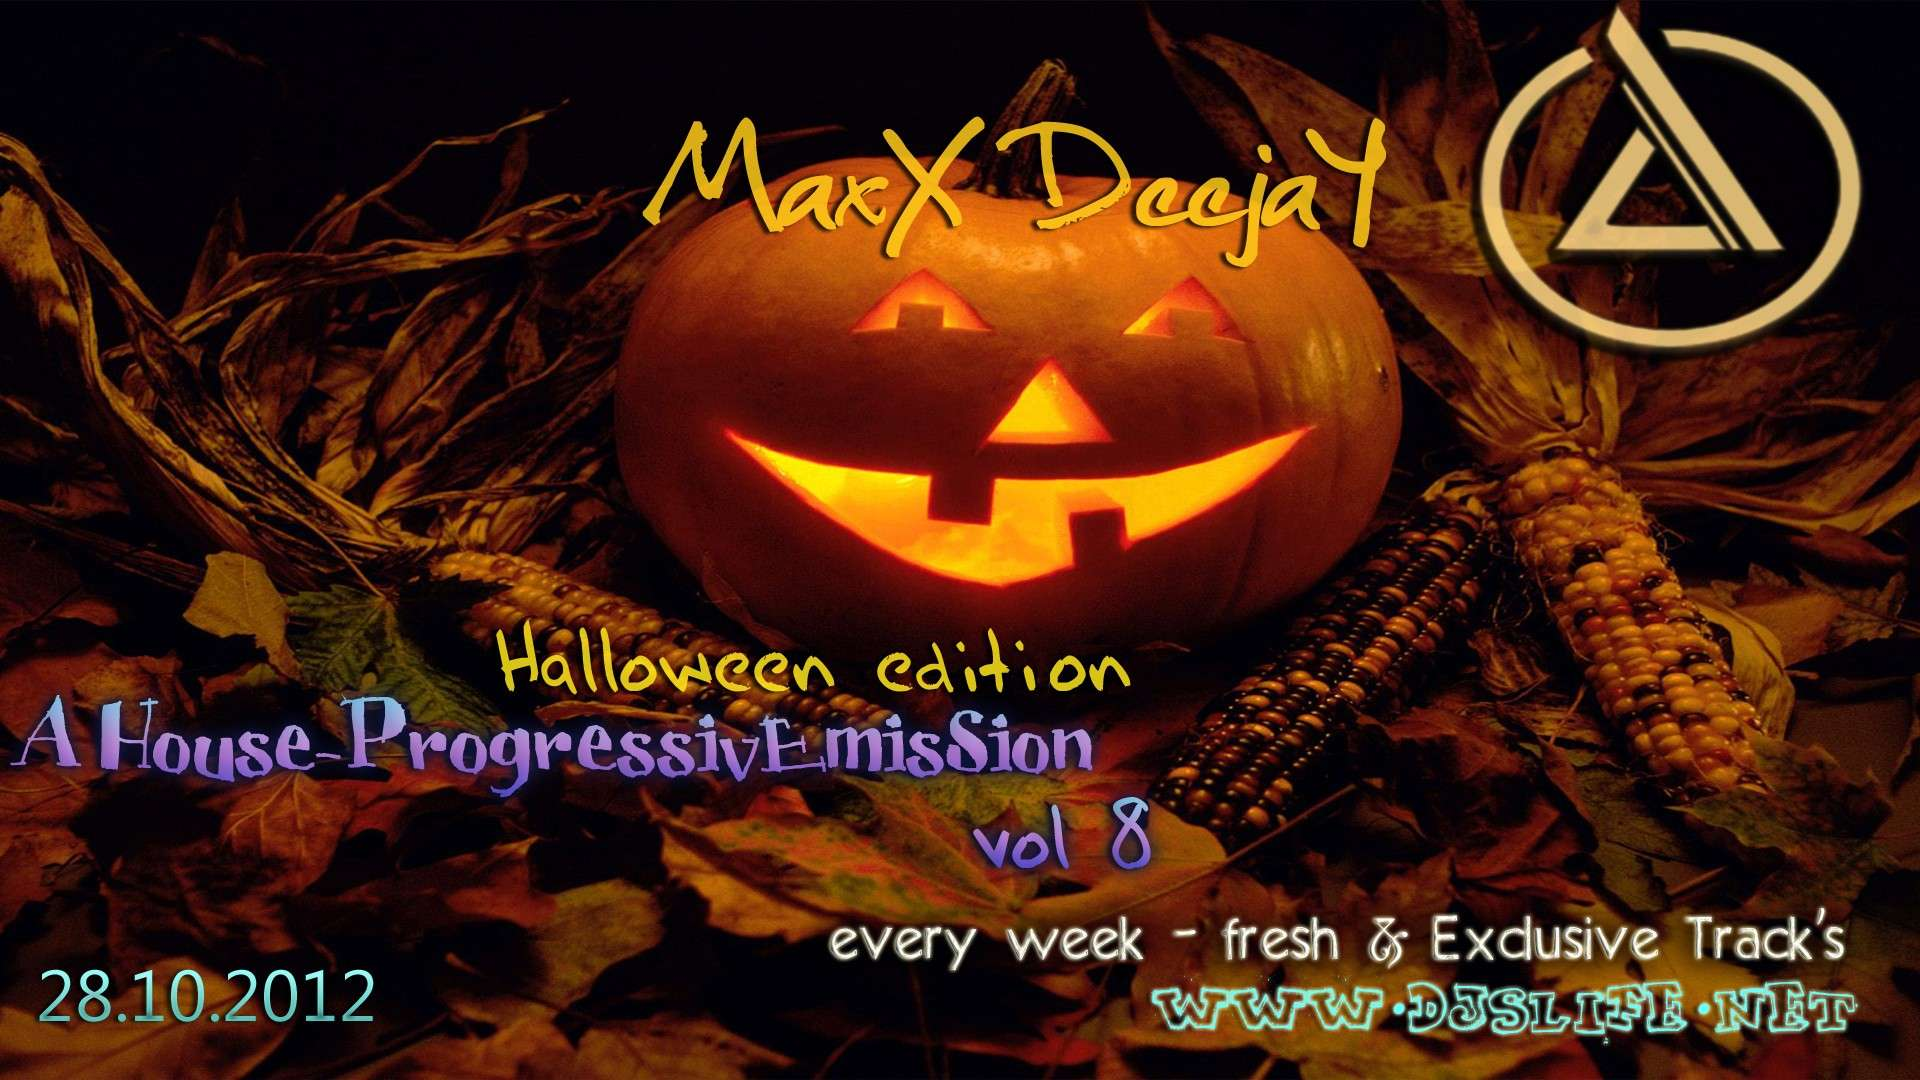 MaxX DeejaY - A House-ProgressivEmisSion vol 8 (Halloween Edition)